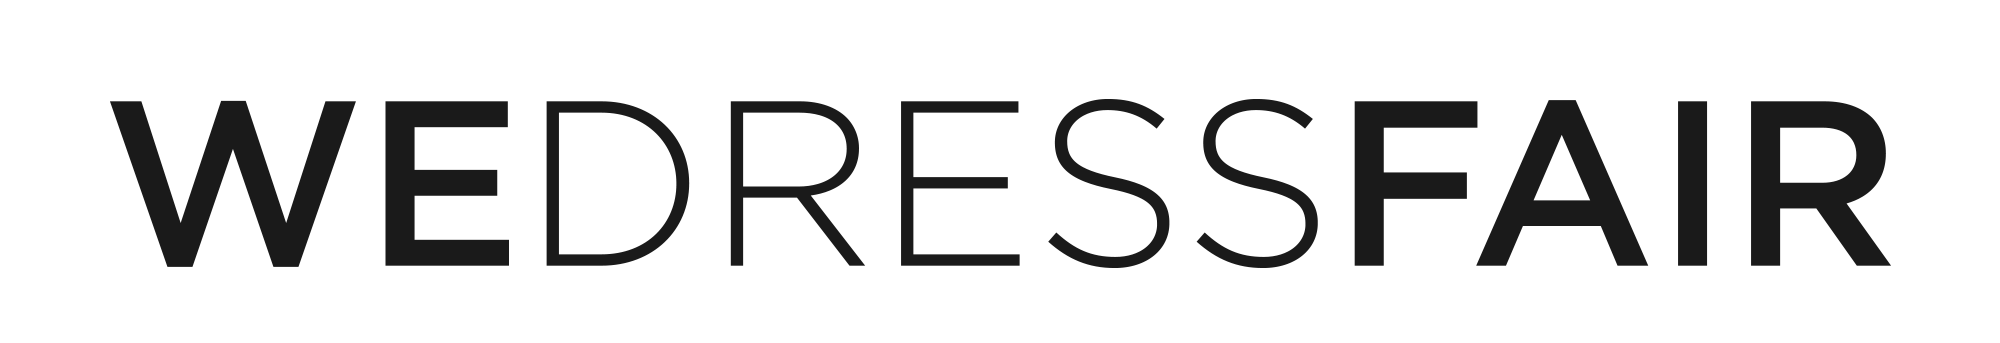 wedressfair-logo